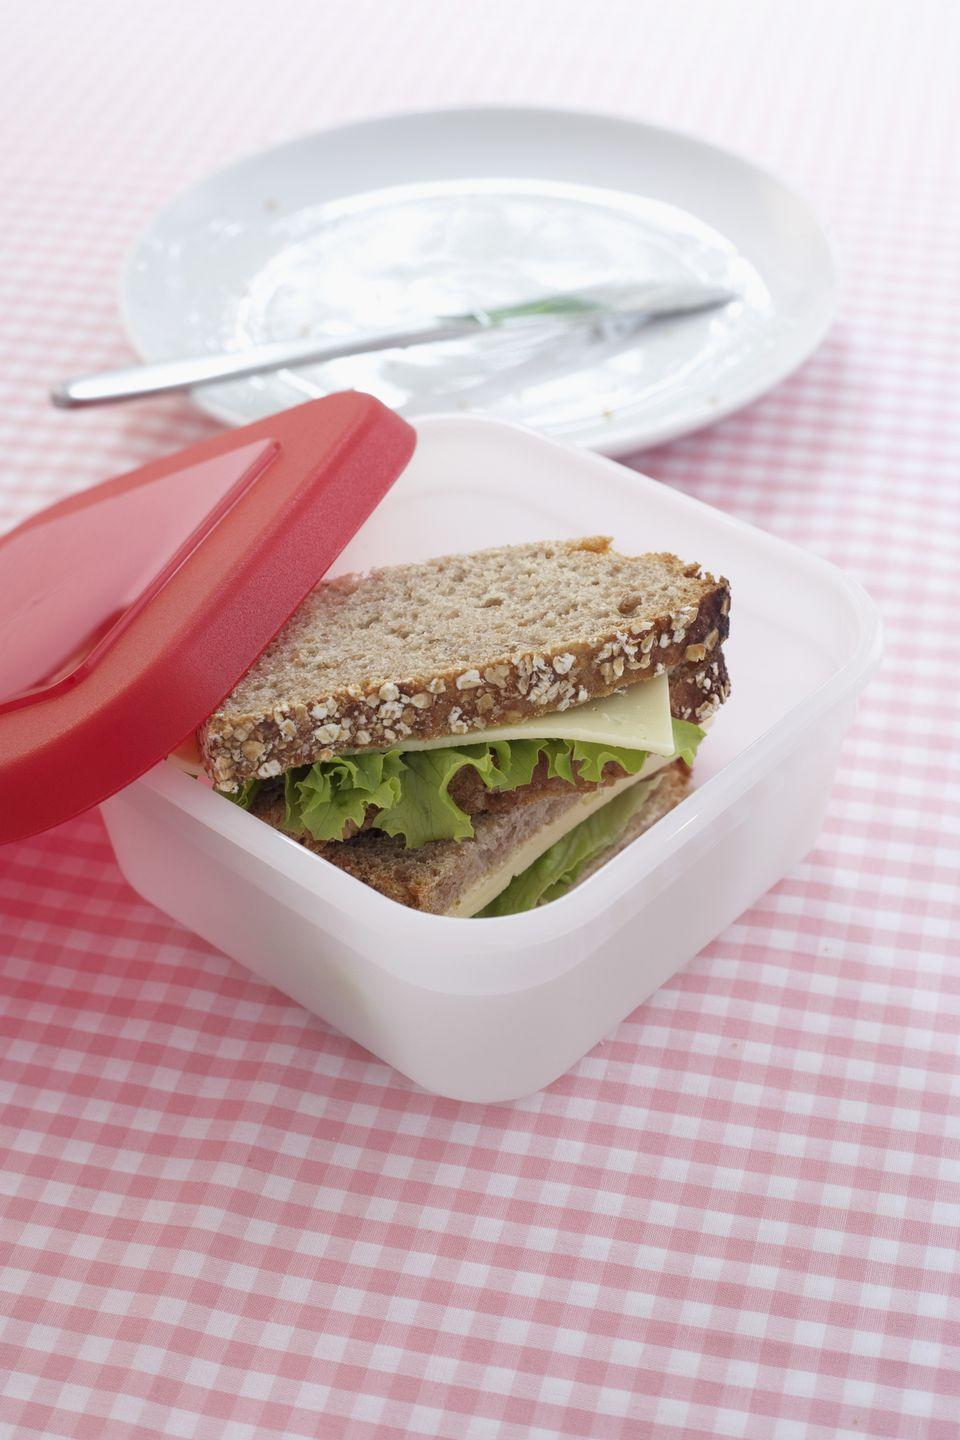 <p>If it starts to permanently smell like leftovers, gets cracked or is discolored from too much time in the microwave, you should replace the plastic containers. </p>